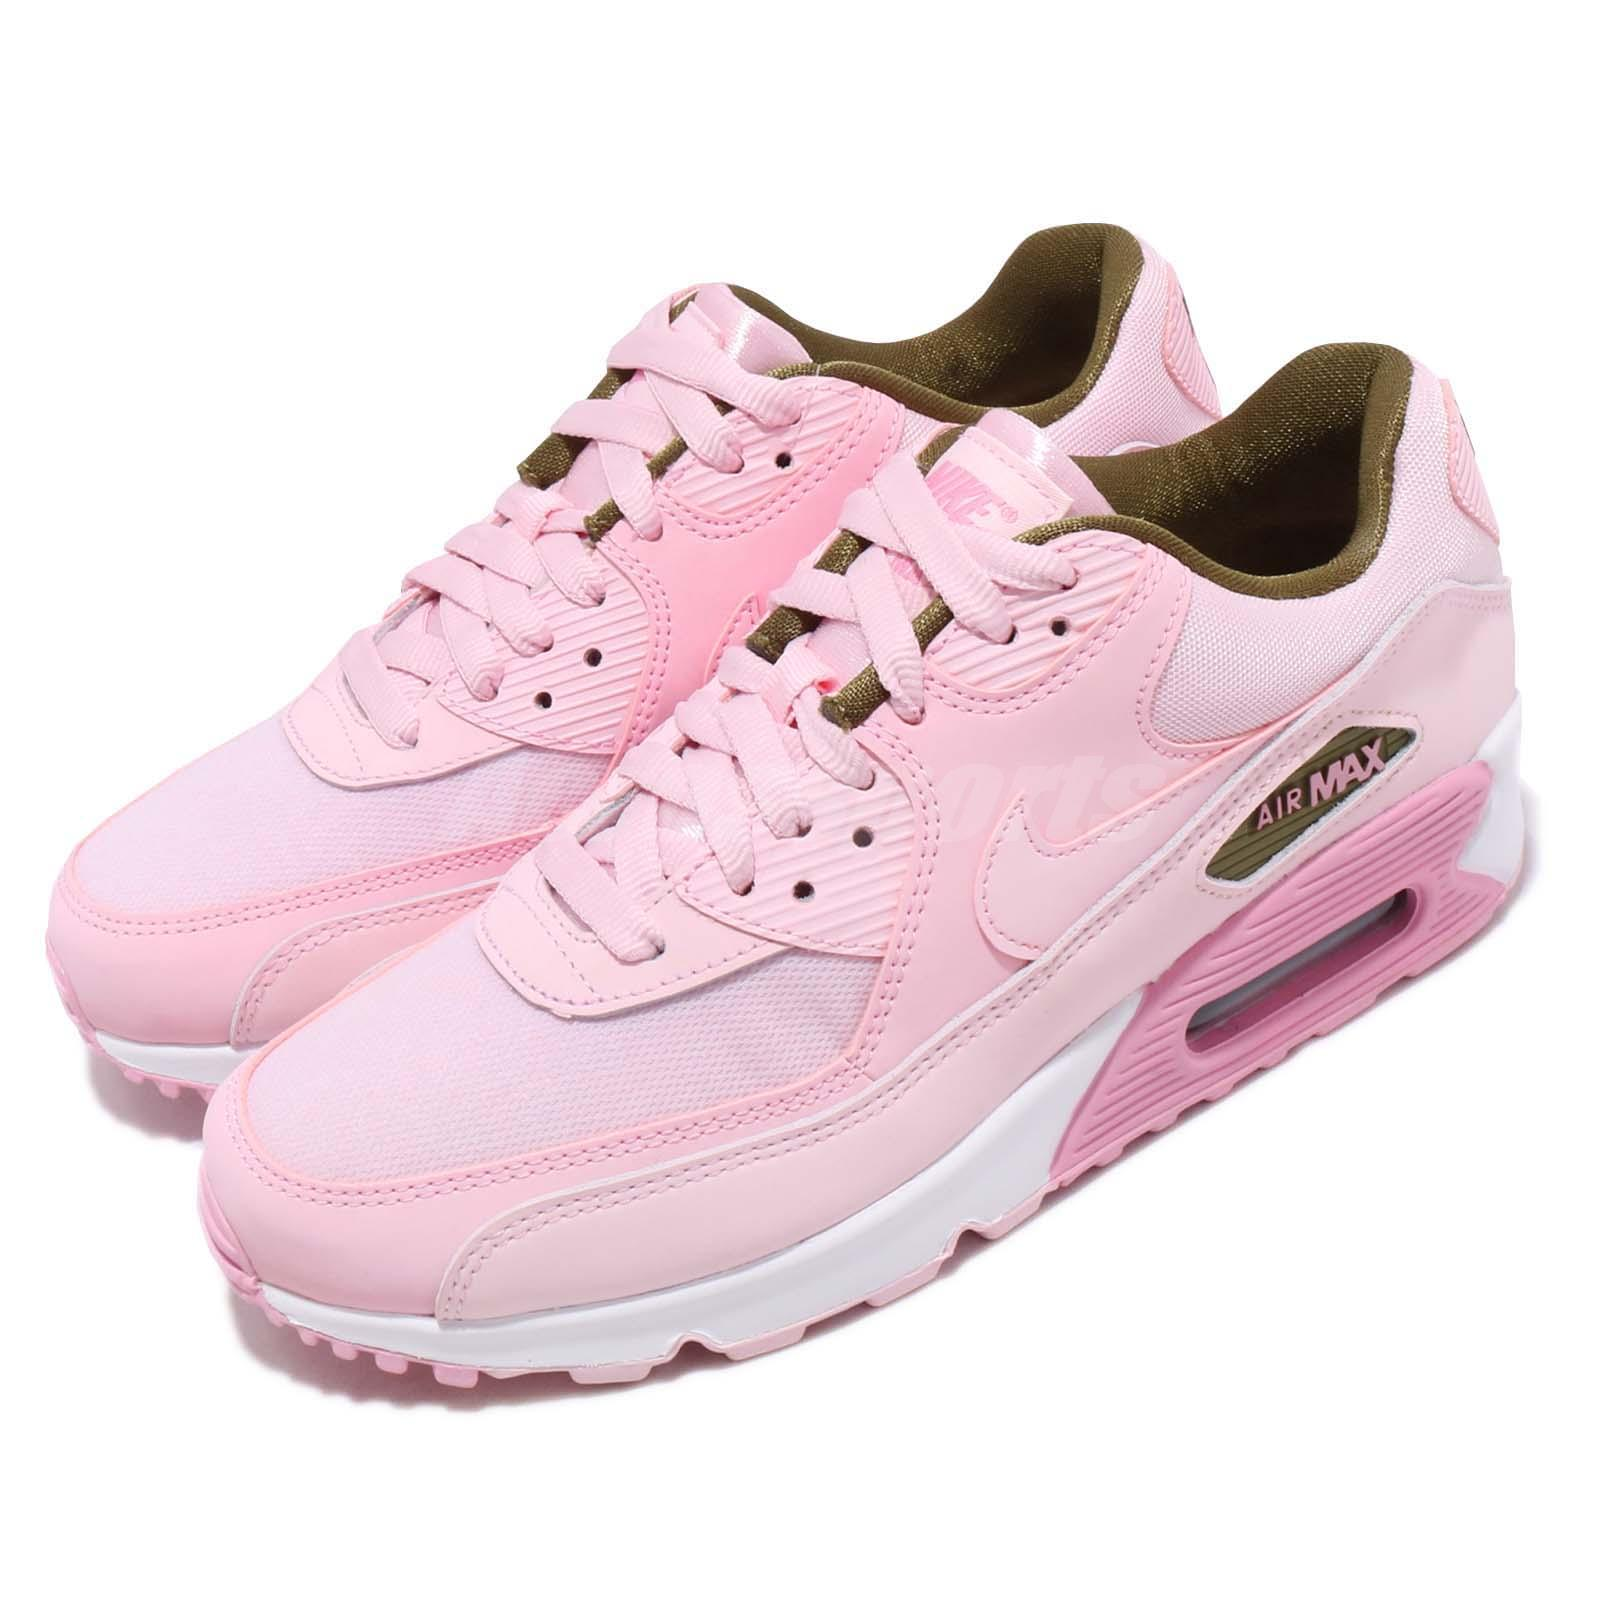 free shipping 11945 26458 Details about Nike Wmns Air Max 90 SE Have A Nike Day Pink Women Shoes  Sneakers 881105-605